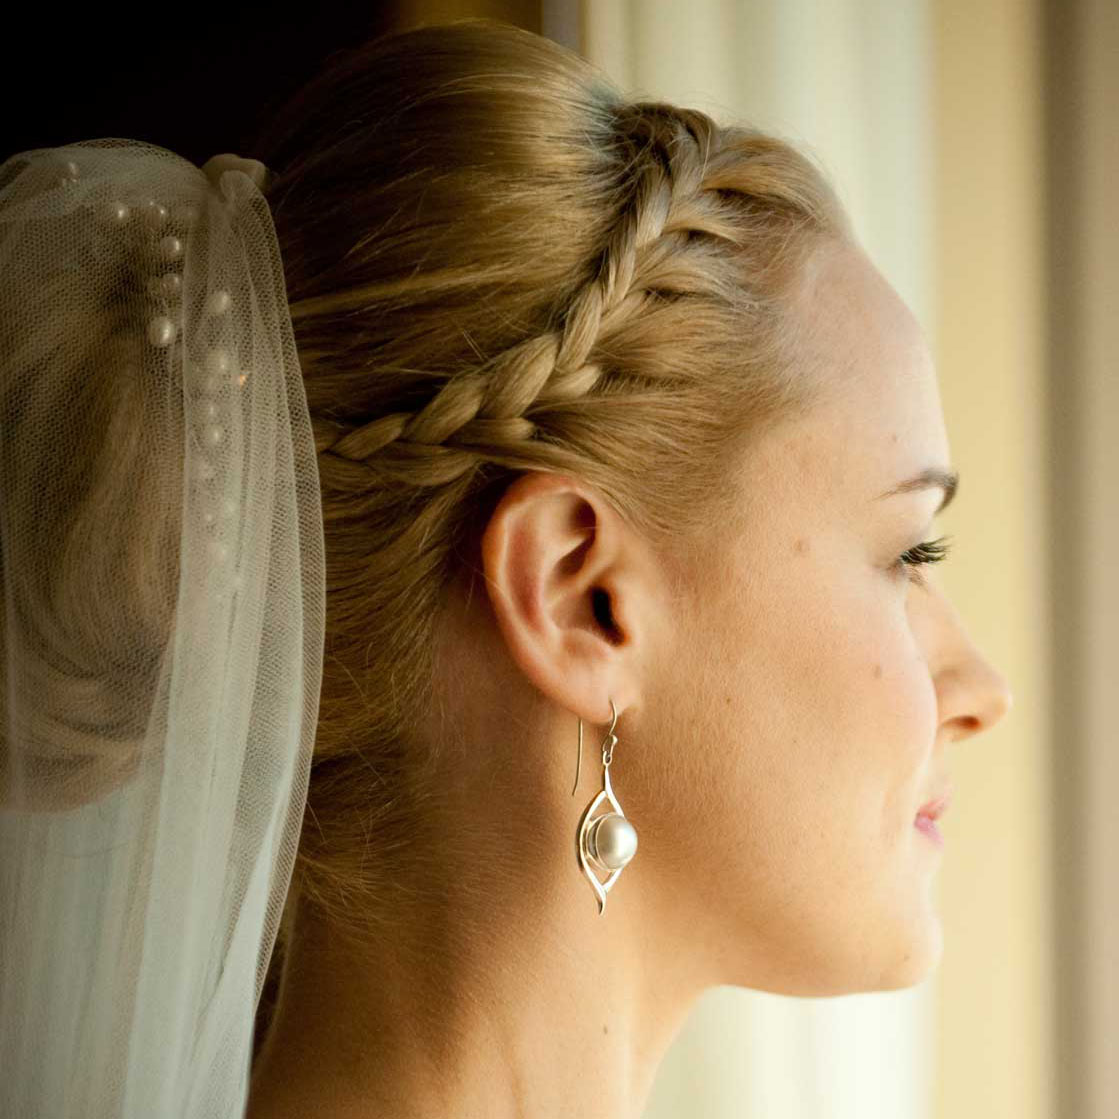 Braided Wedding Hair: Wear Braids On Your Wedding Day! : Have Your Dream Wedding